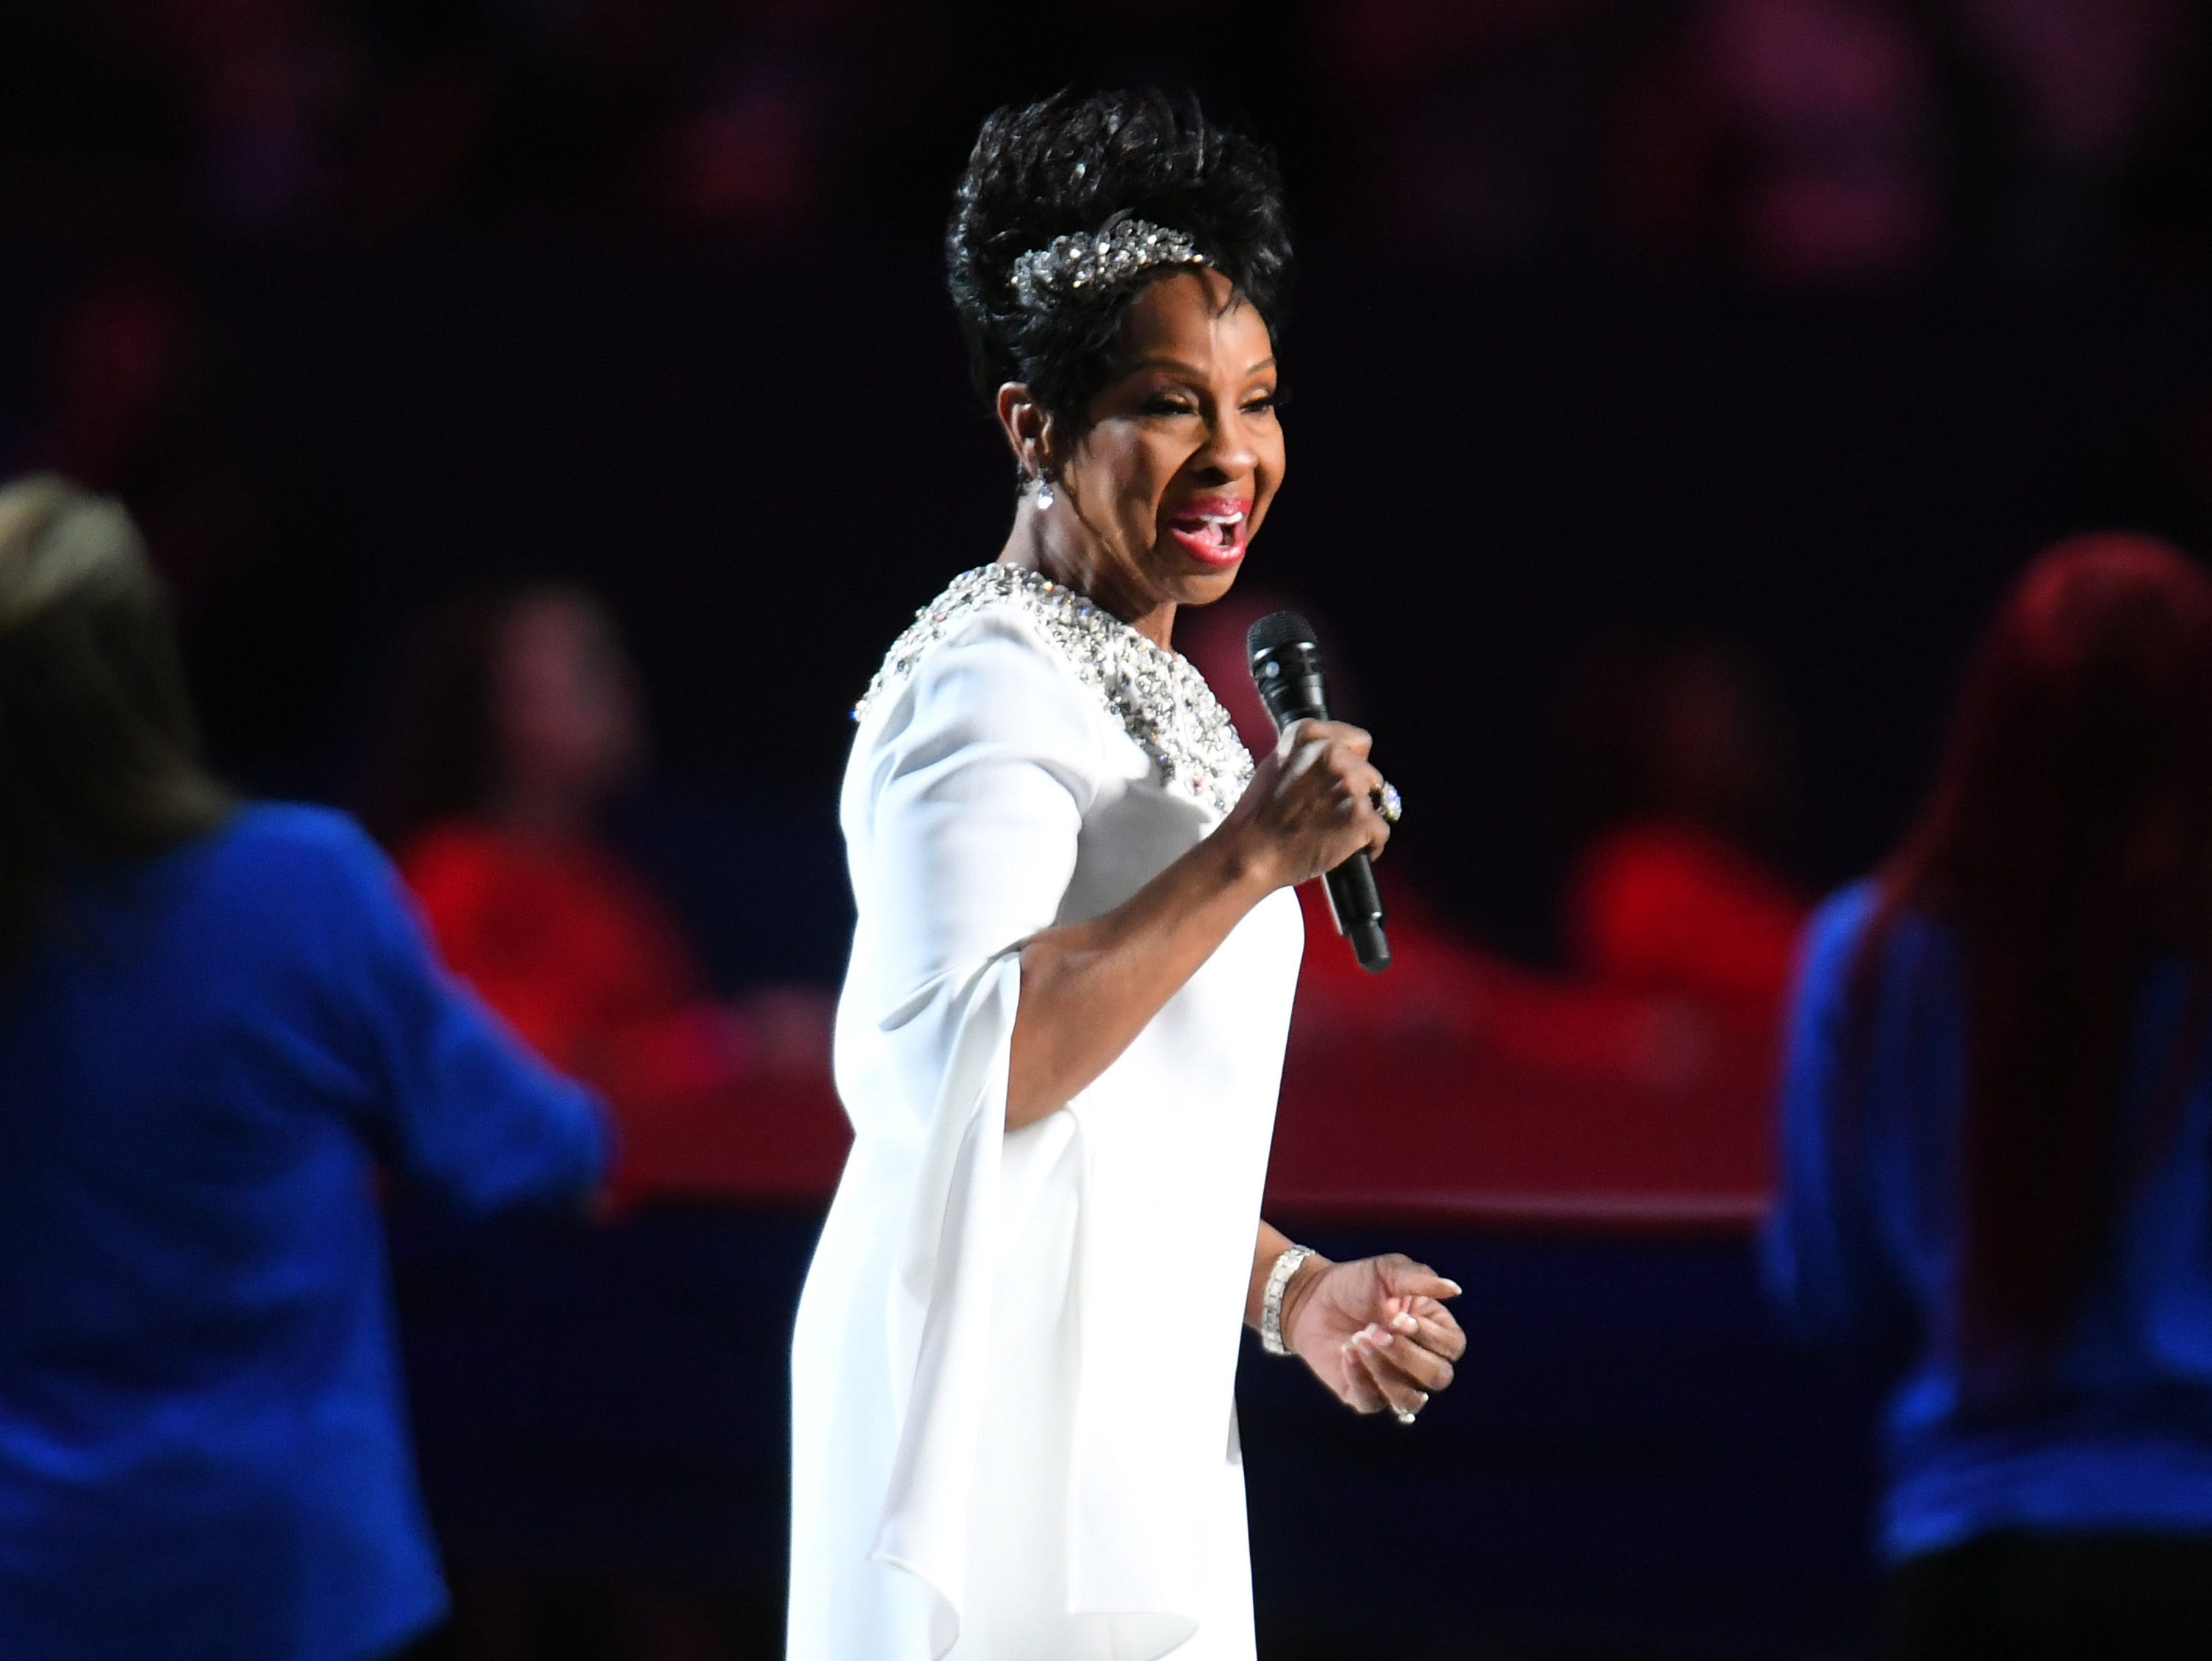 Gladys Knight performs the national anthem before Super Bowl LIII.